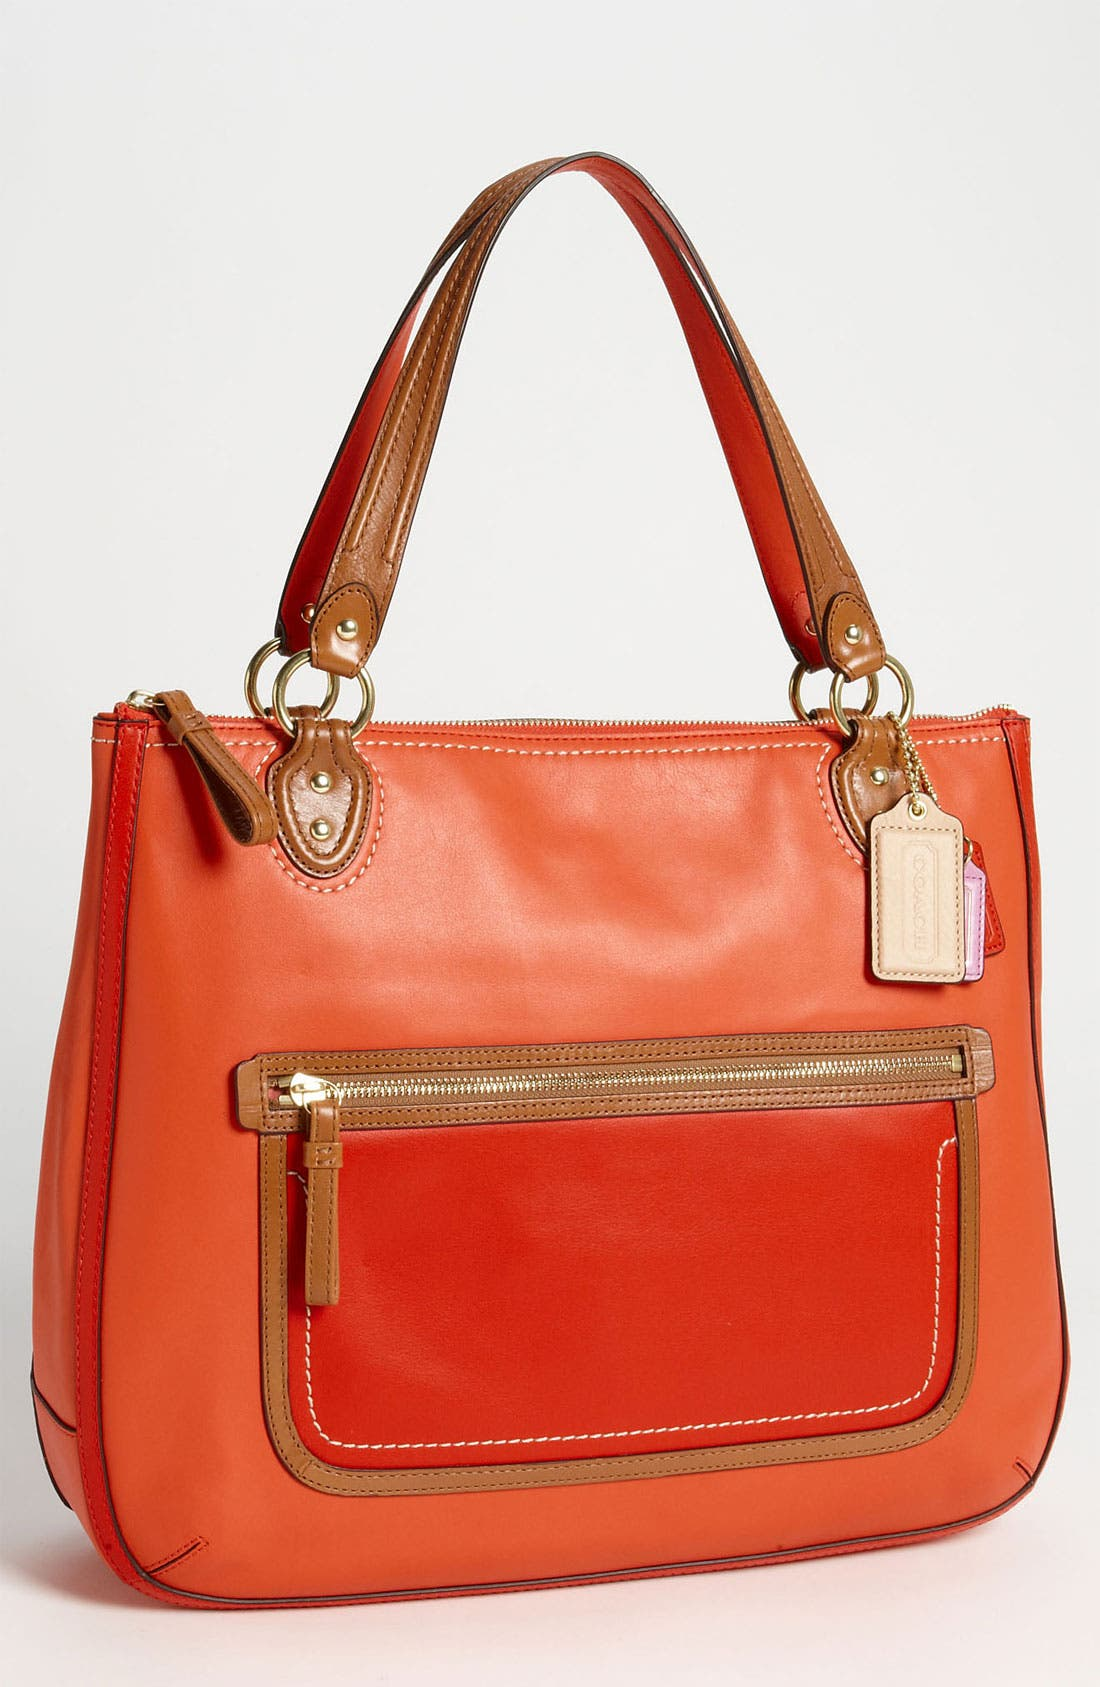 Alternate Image 1 Selected - COACH 'Poppy Colorblock' Leather Tote